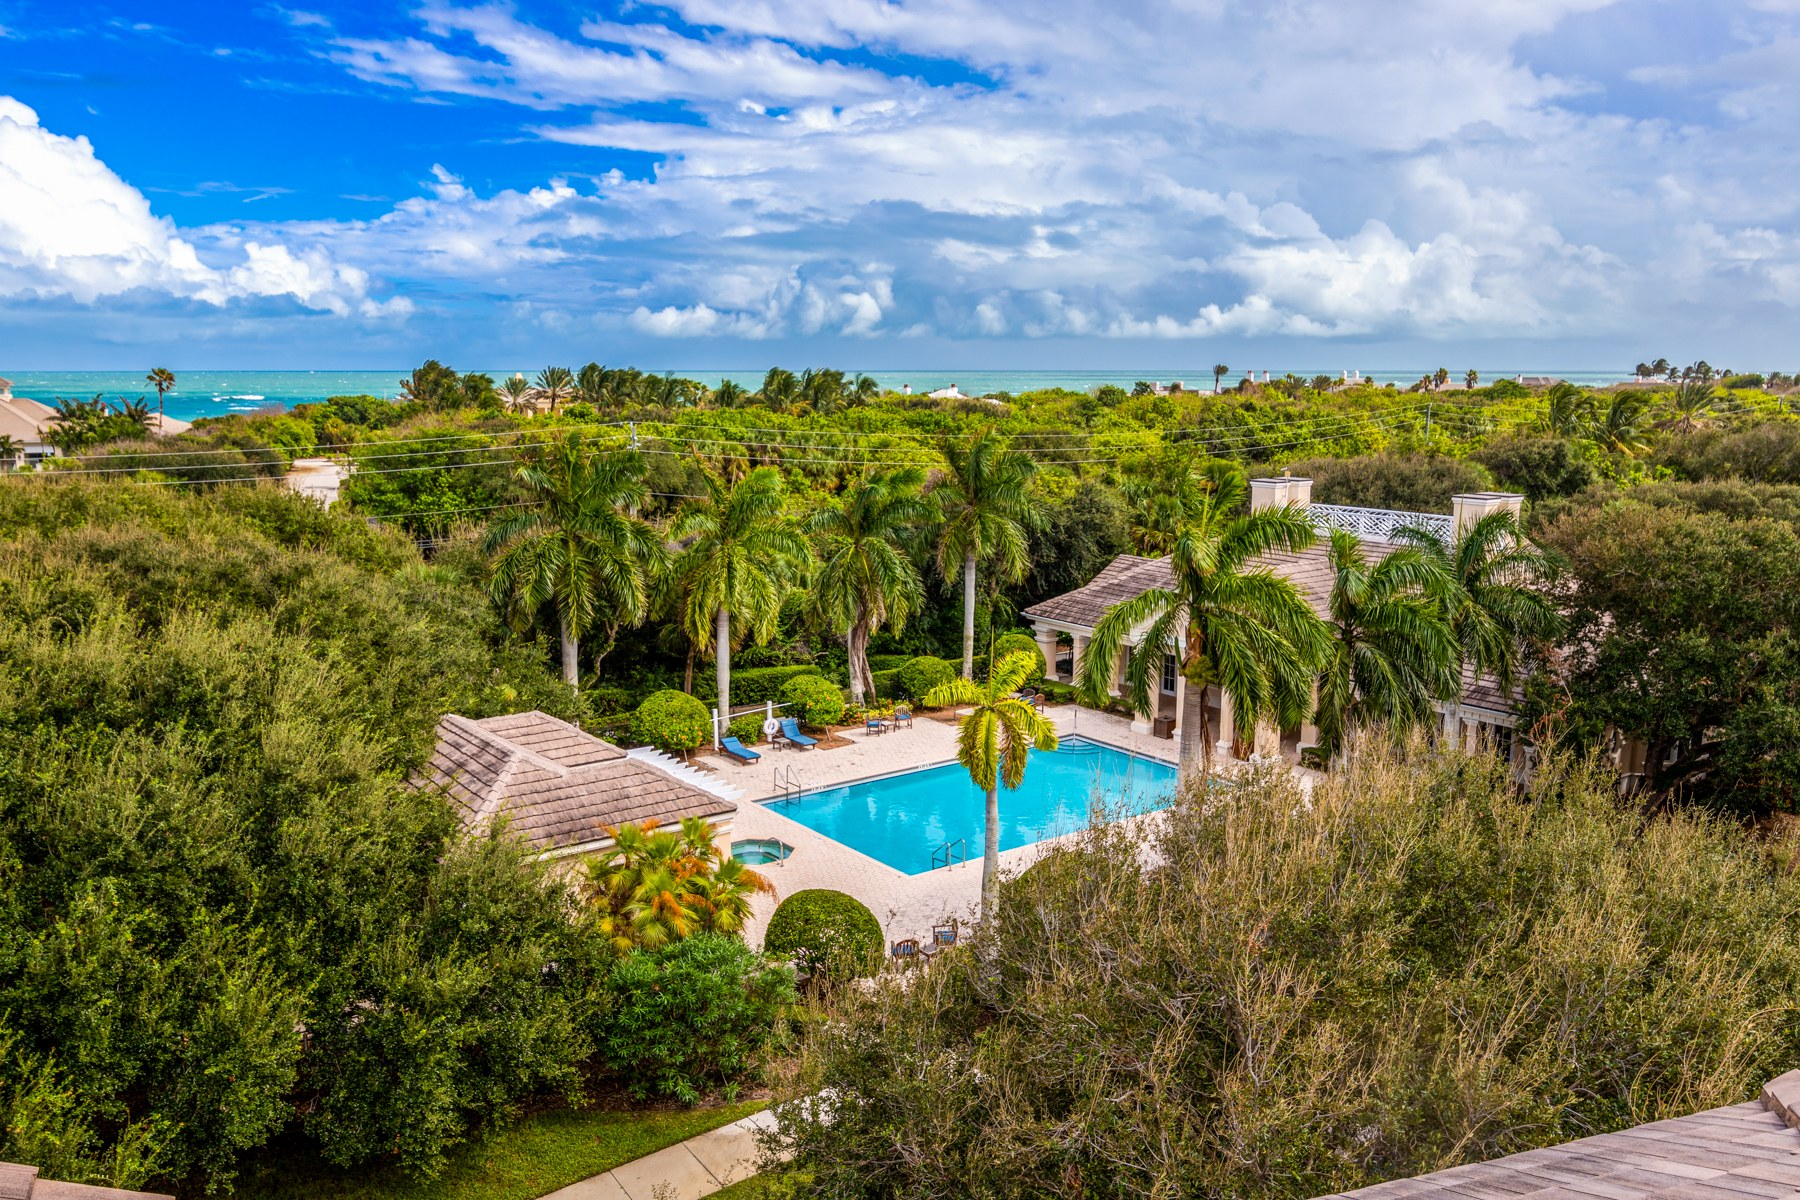 Property для того Продажа на 900 River Club Drive & Highway A1 A, Vero Beach, FL 900 River Club Drive & Highway A1 A Vero Beach, Флорида 32963 Соединенные Штаты